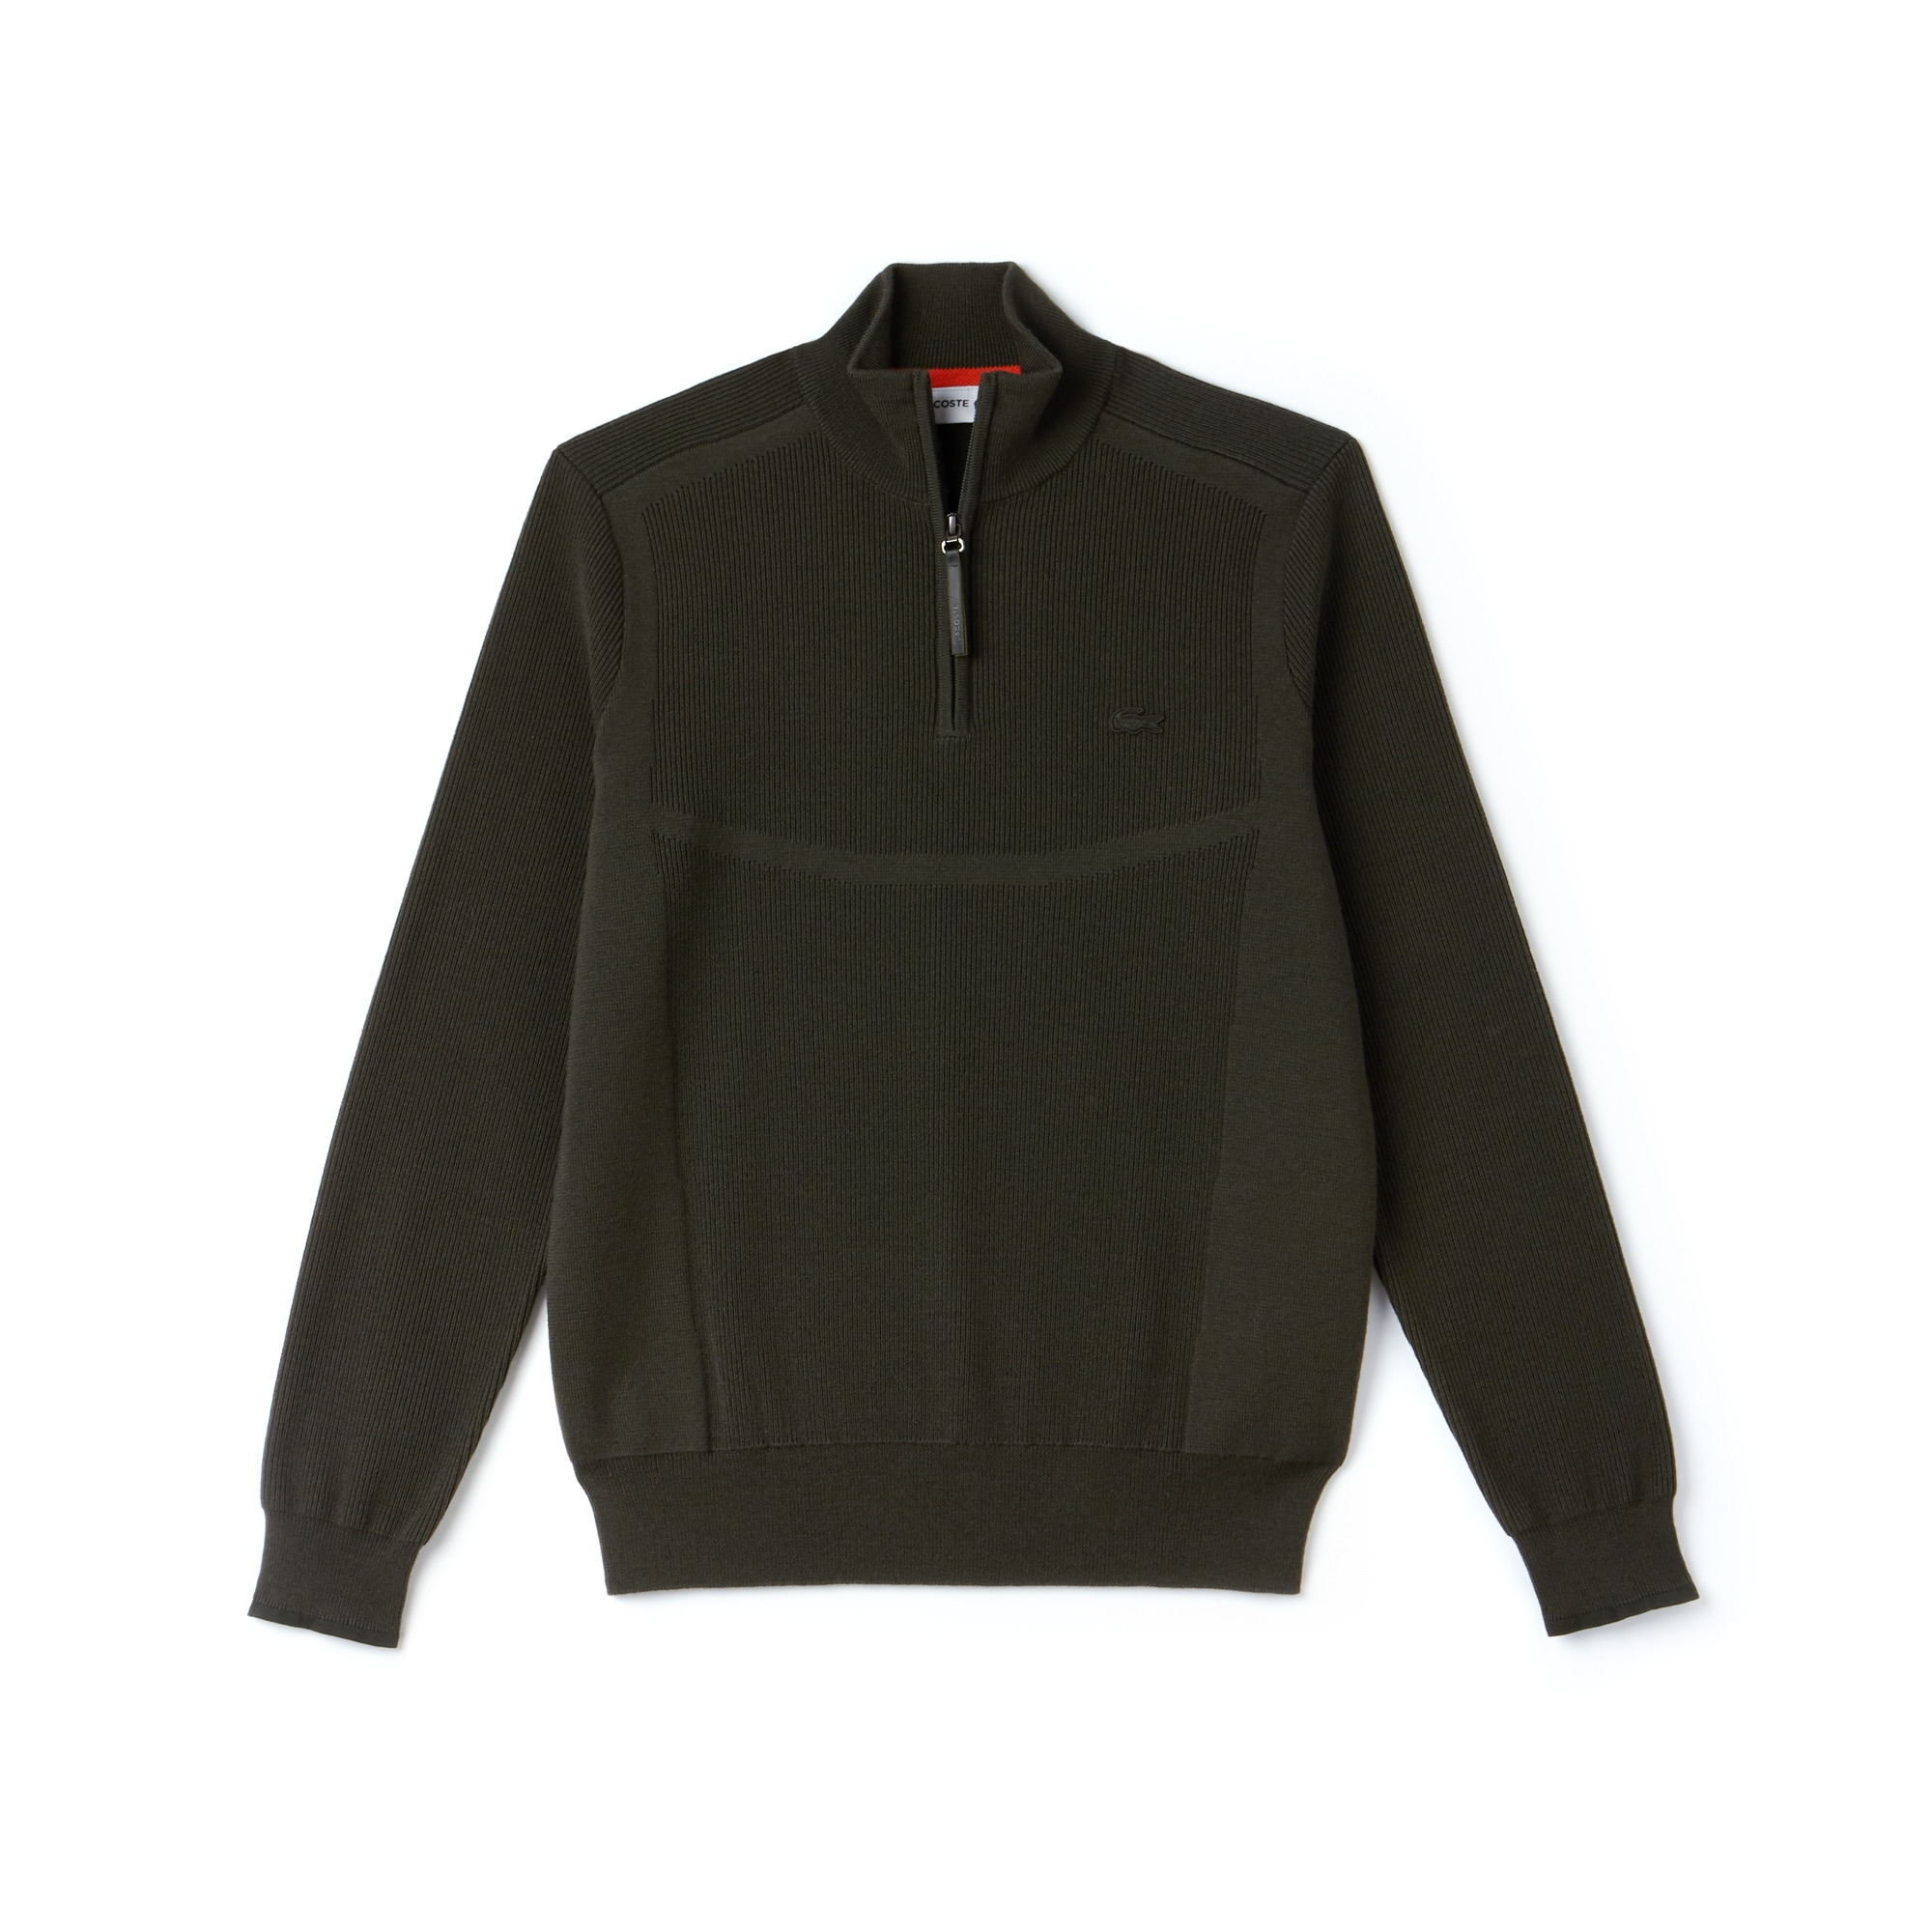 Men's Lacoste Motion Zippered Stand-Up Collar Ribbed Wool Sweater